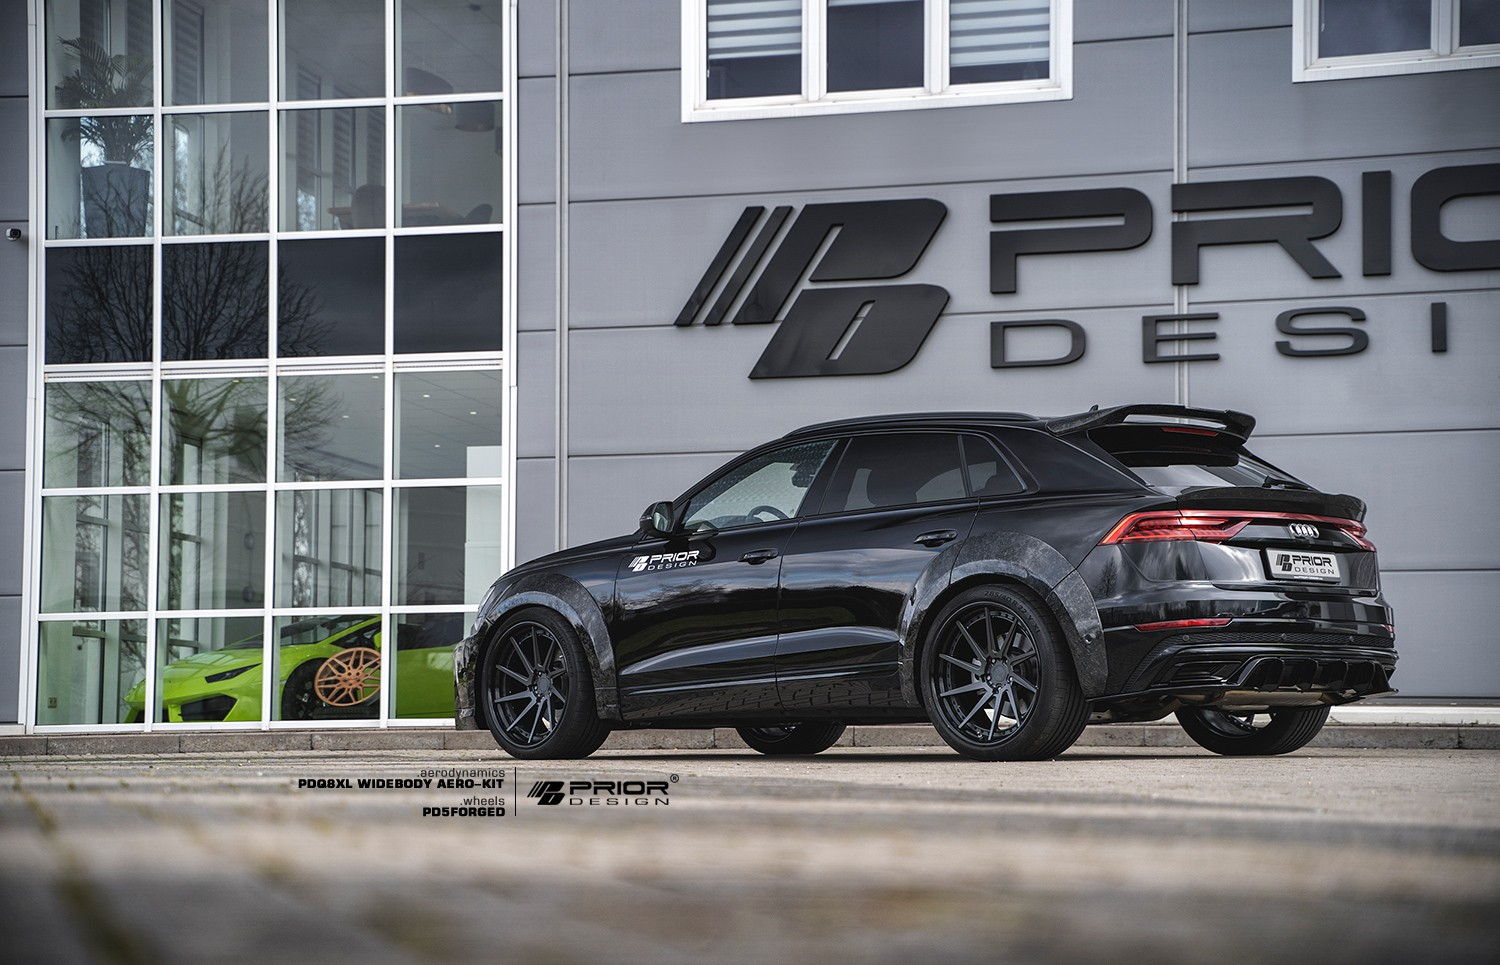 Audi-Q8-PDQ8XL-by-Prior-Design-11